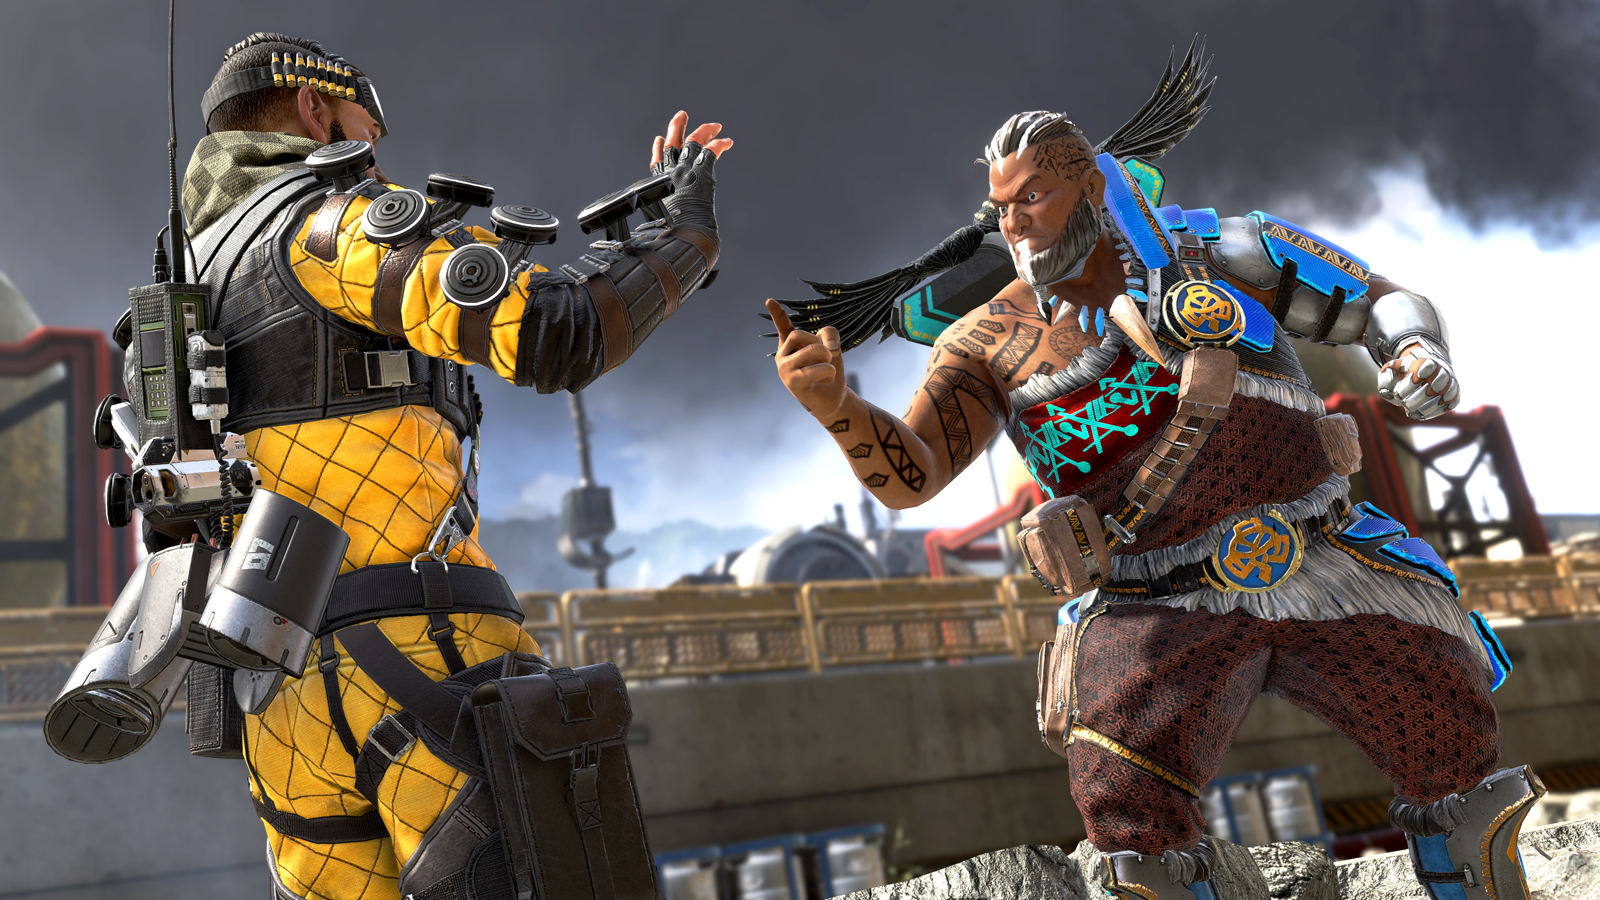 Apex Legends' new event brings a new area to the map, new skins, and a solo mode